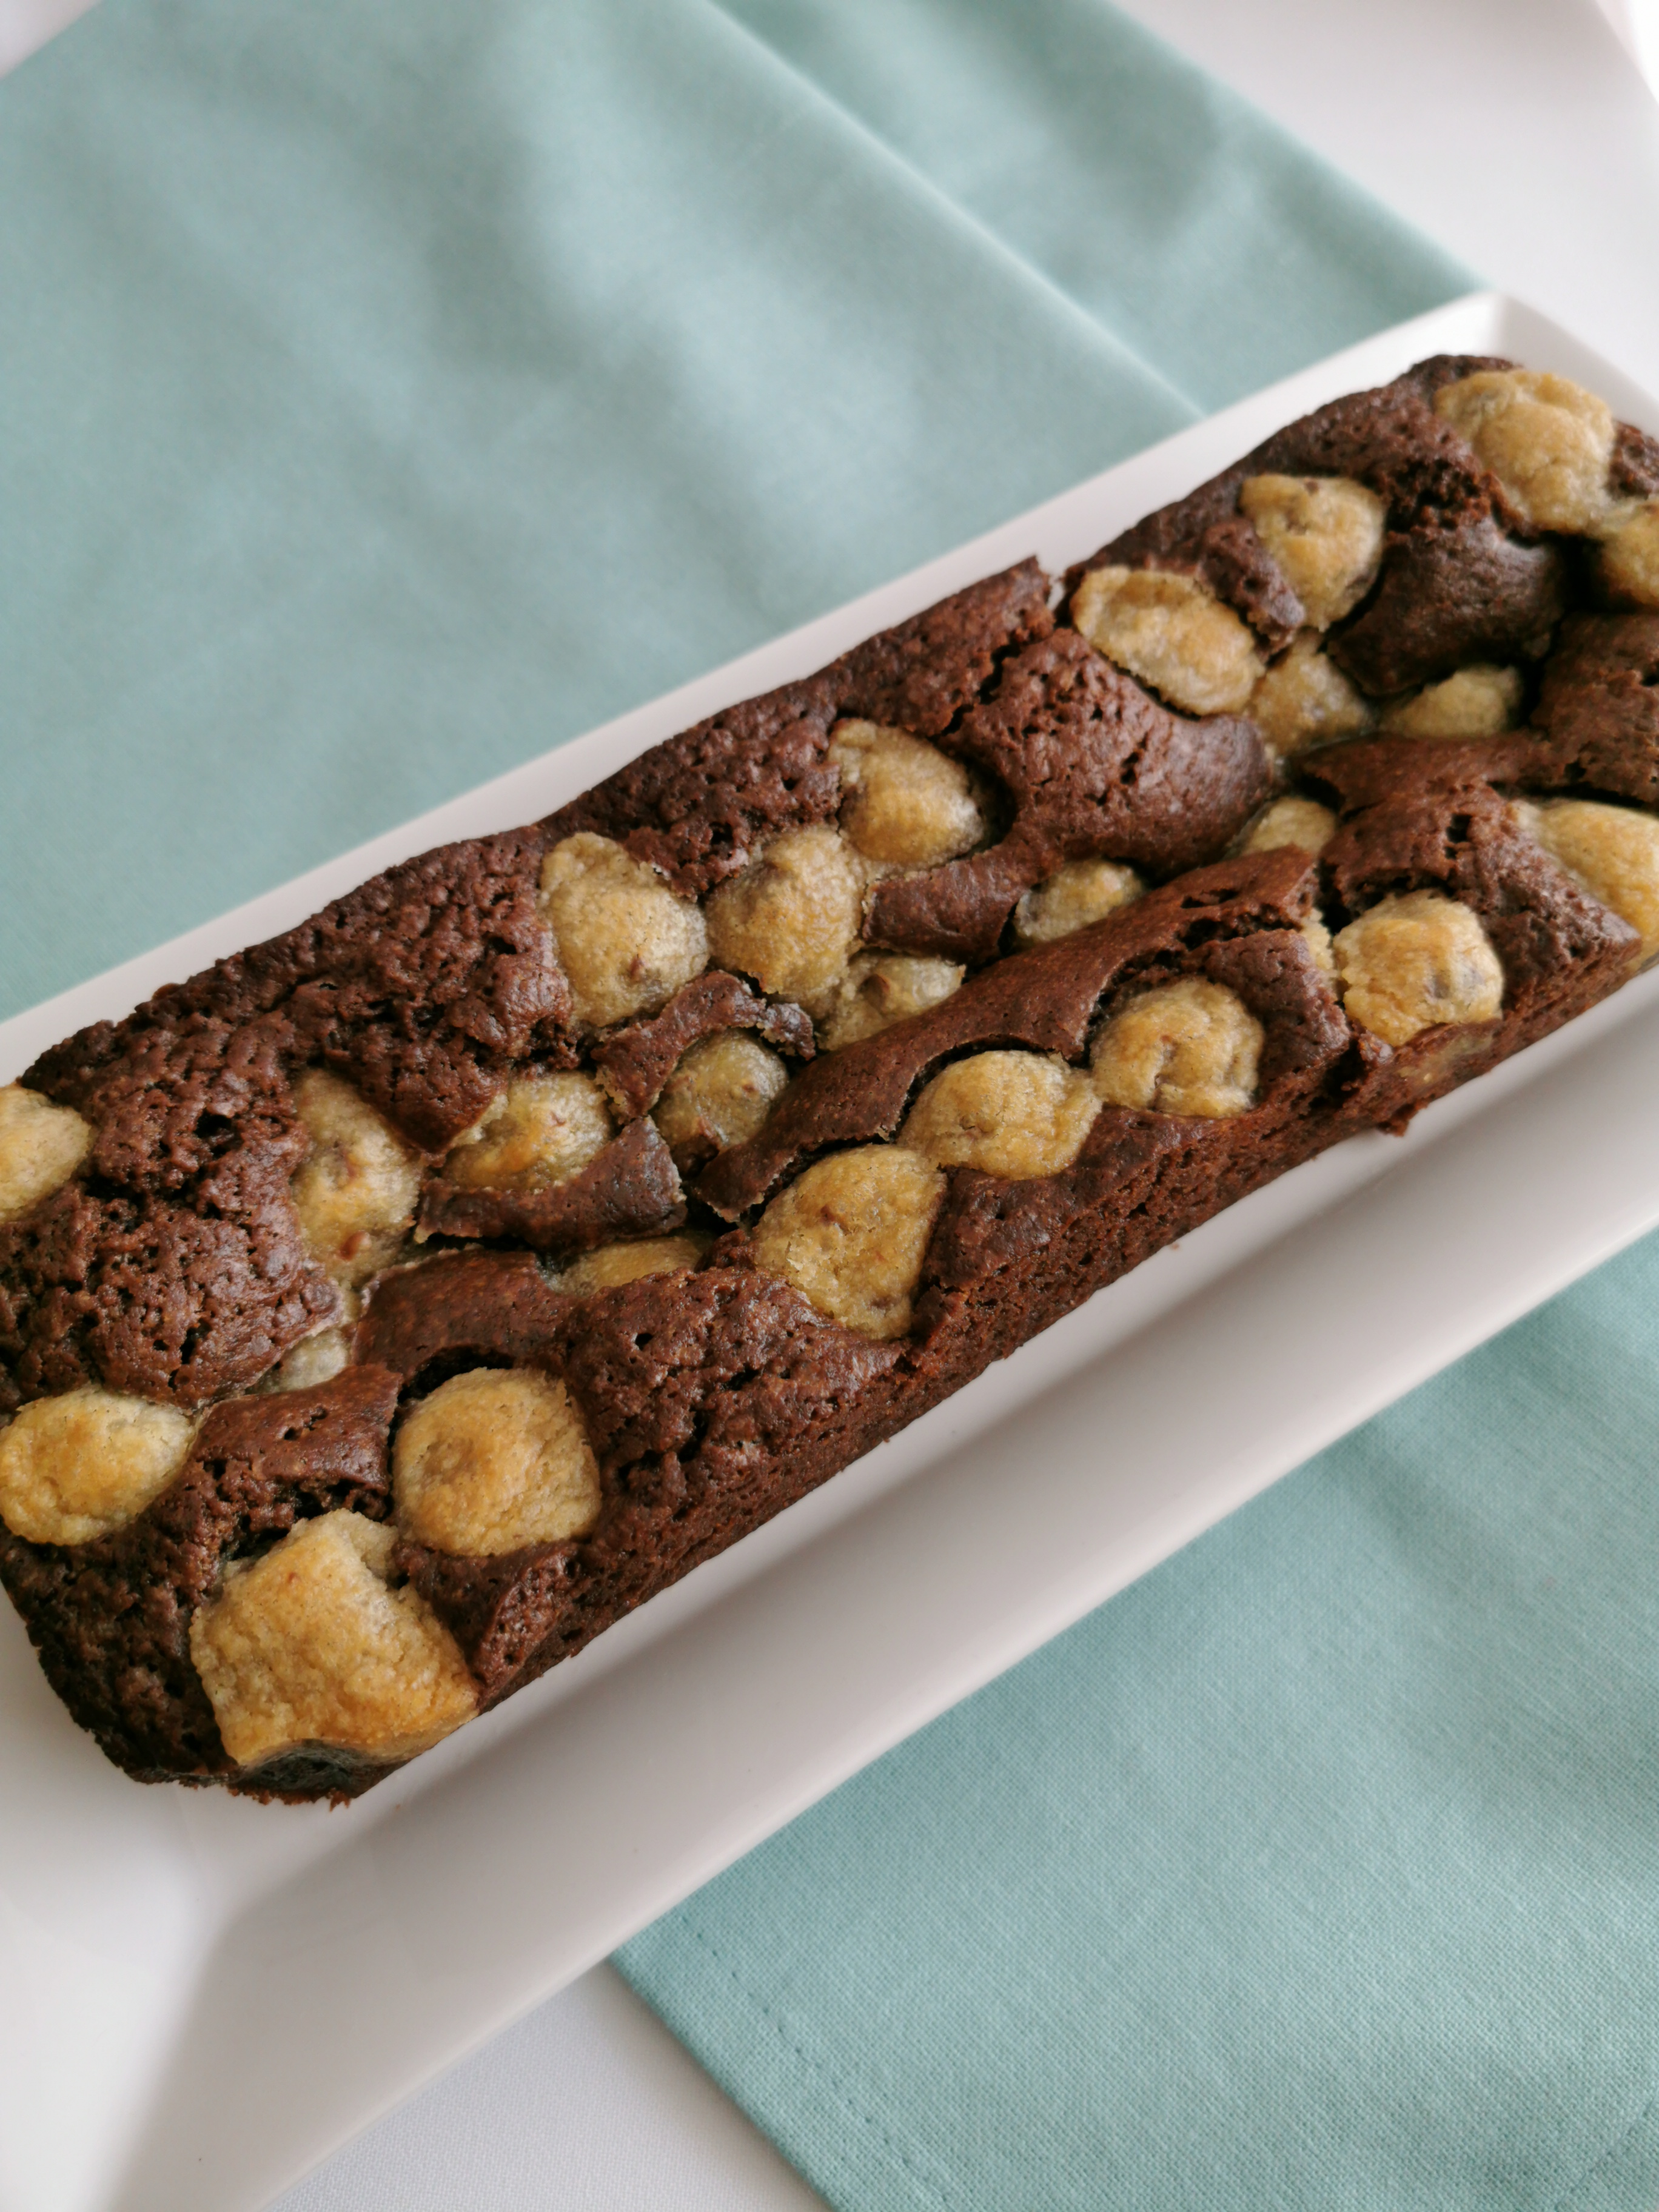 hele browniecake met cookie dough